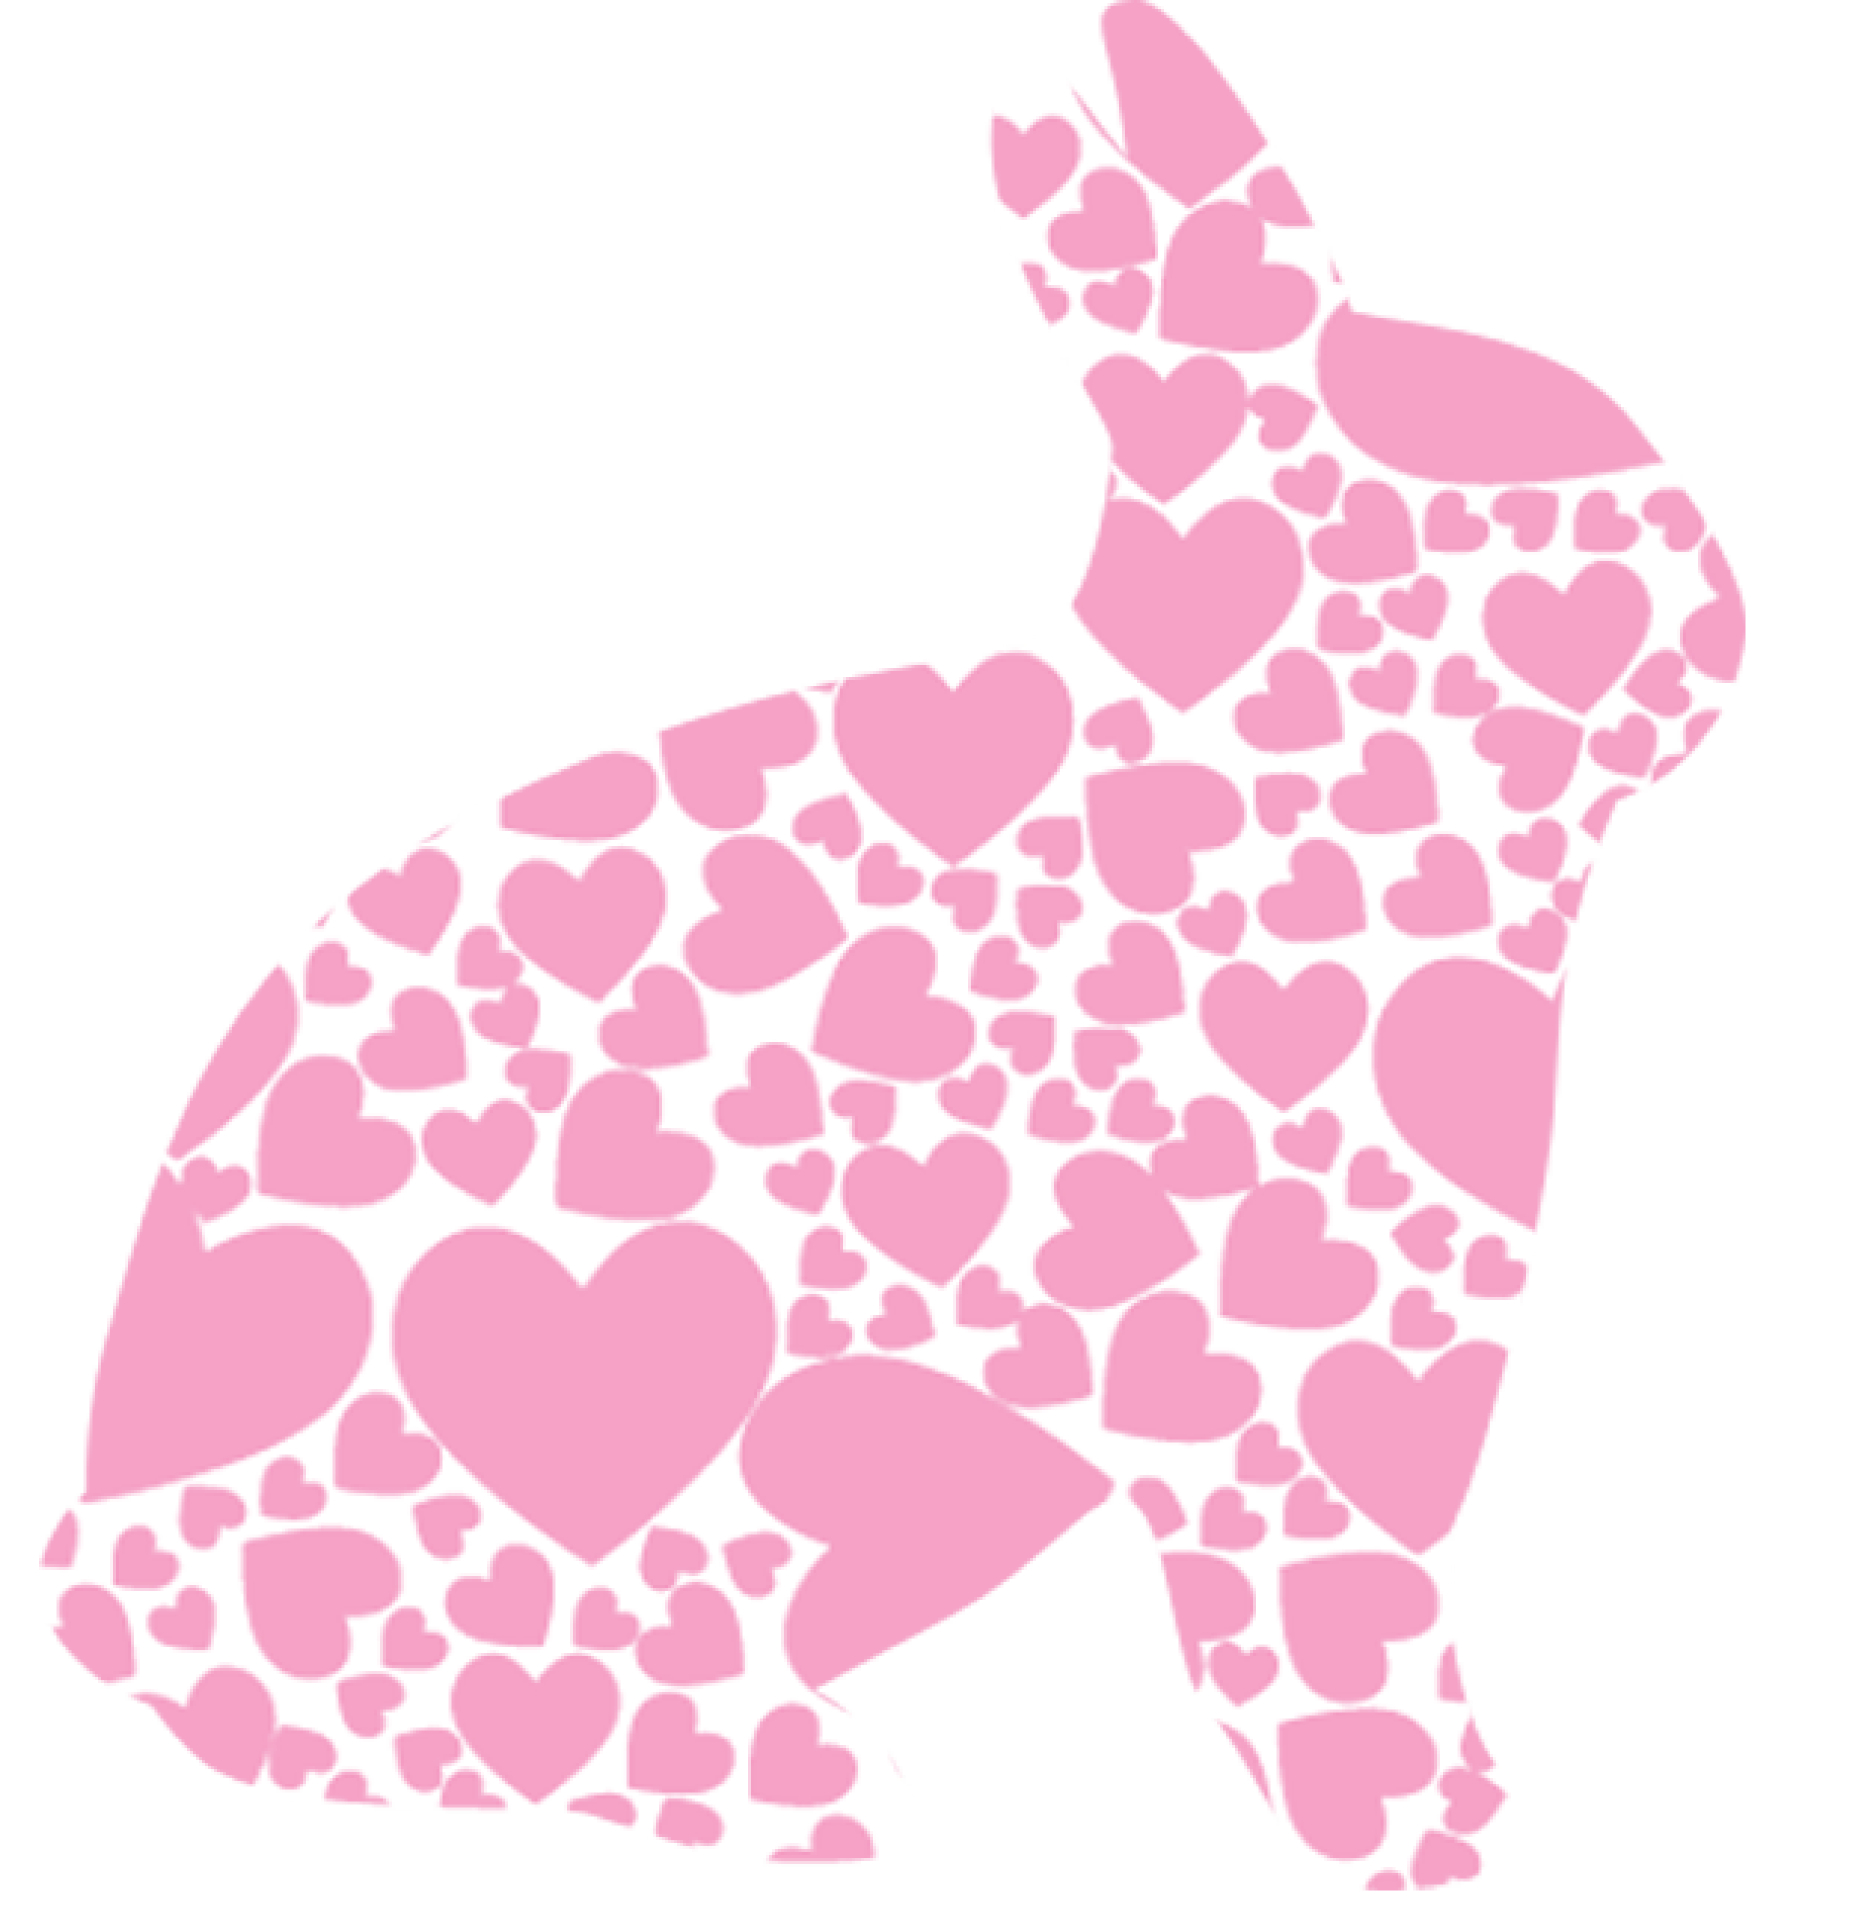 Heart-pink bunny silhouette vector